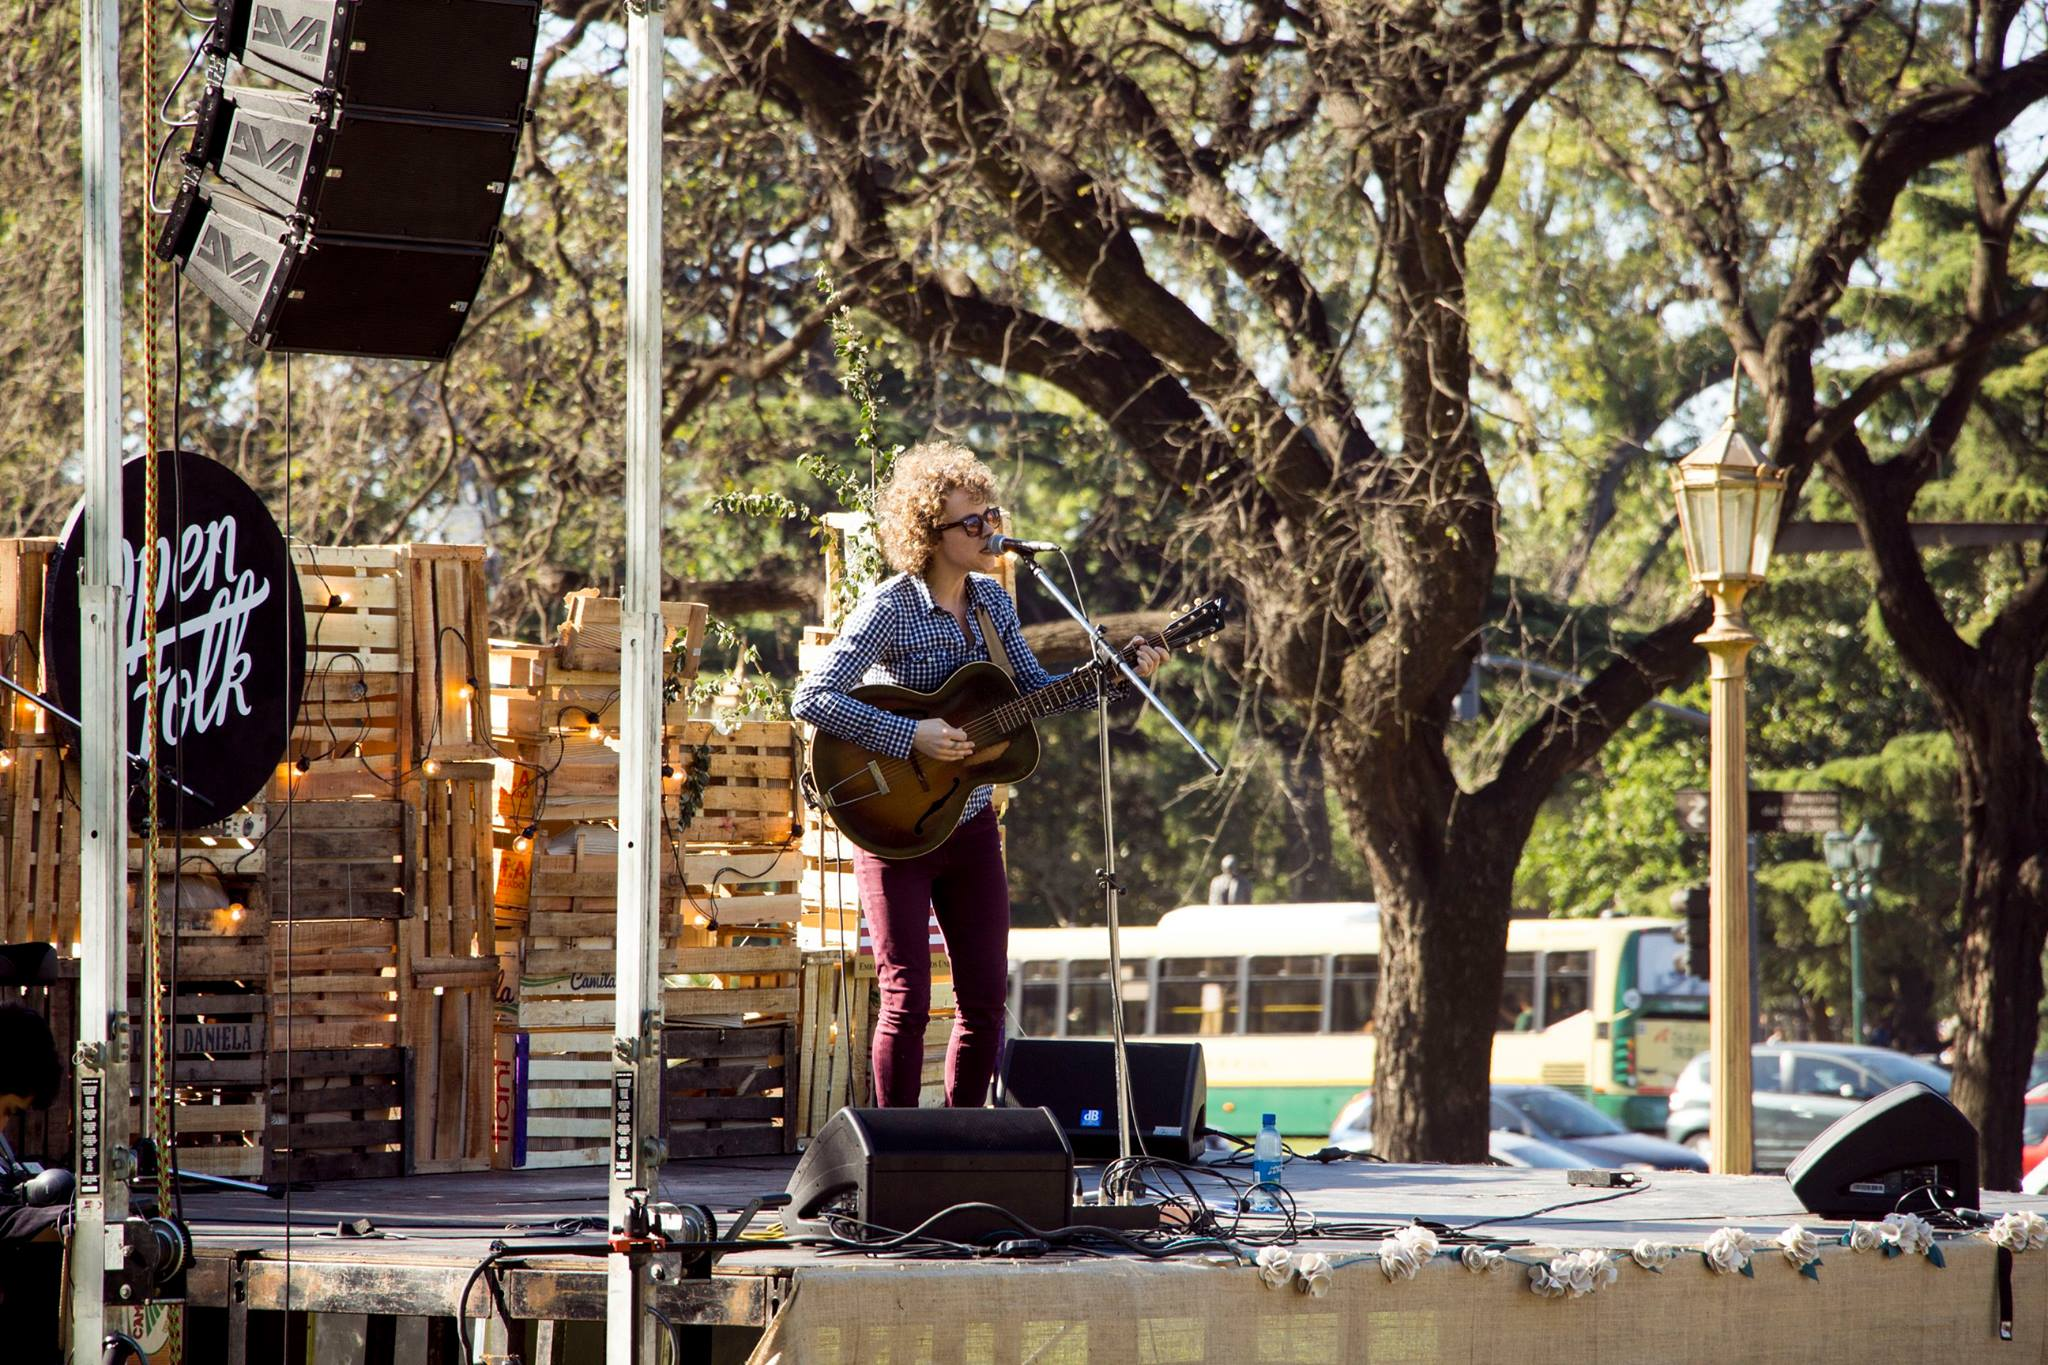 EKB live at the Open Folk Festival in Buenos Aires, Argentina. Her upcoming release The Gradient Album will be recorded in South America.